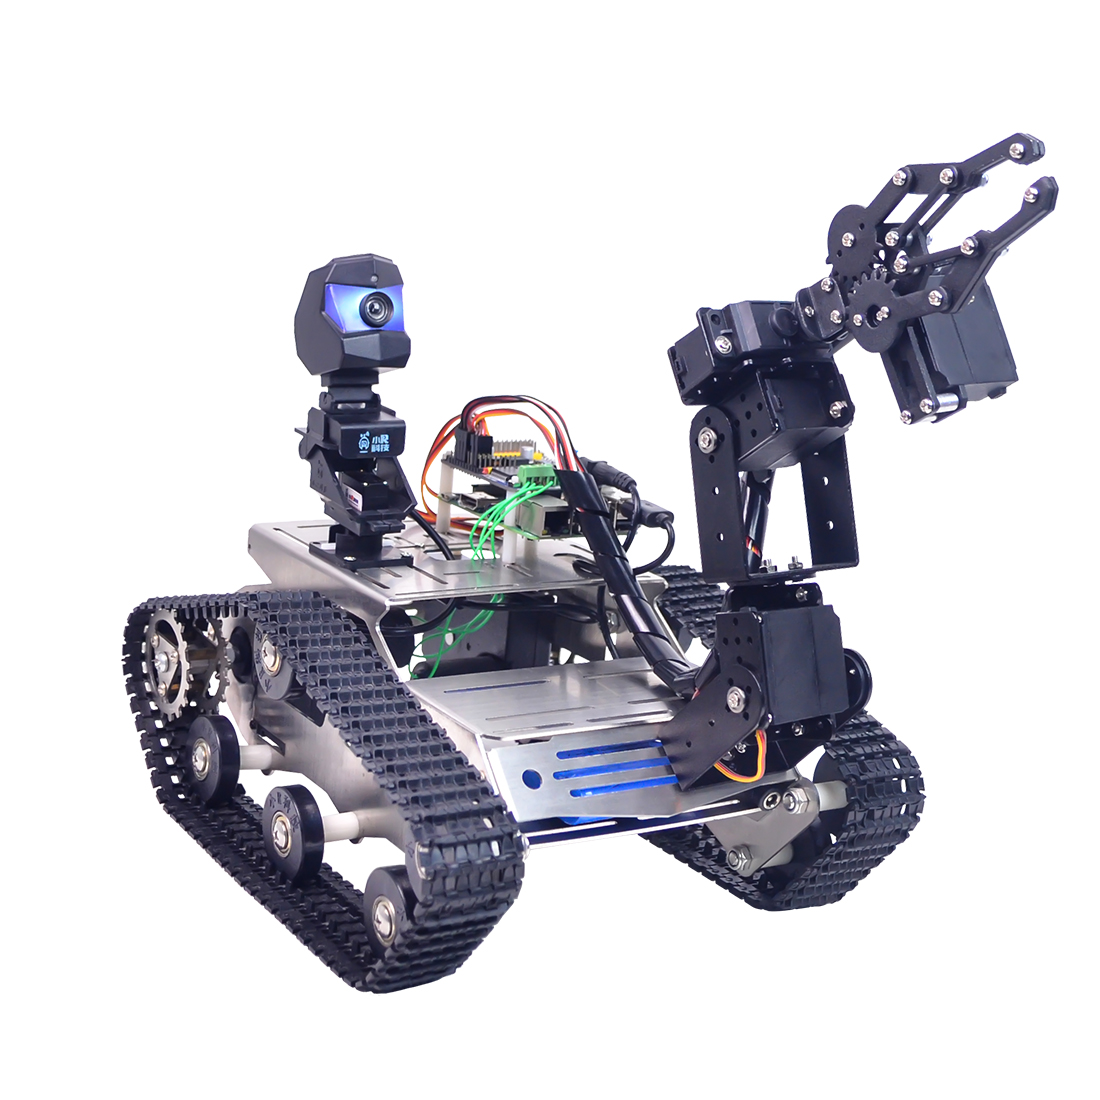 Programmable TH WiFi FPV Tank Robot Car Kit With Arm For Arduino MEGA - Line Patrol Obstacle Avoidance Version Small Claw